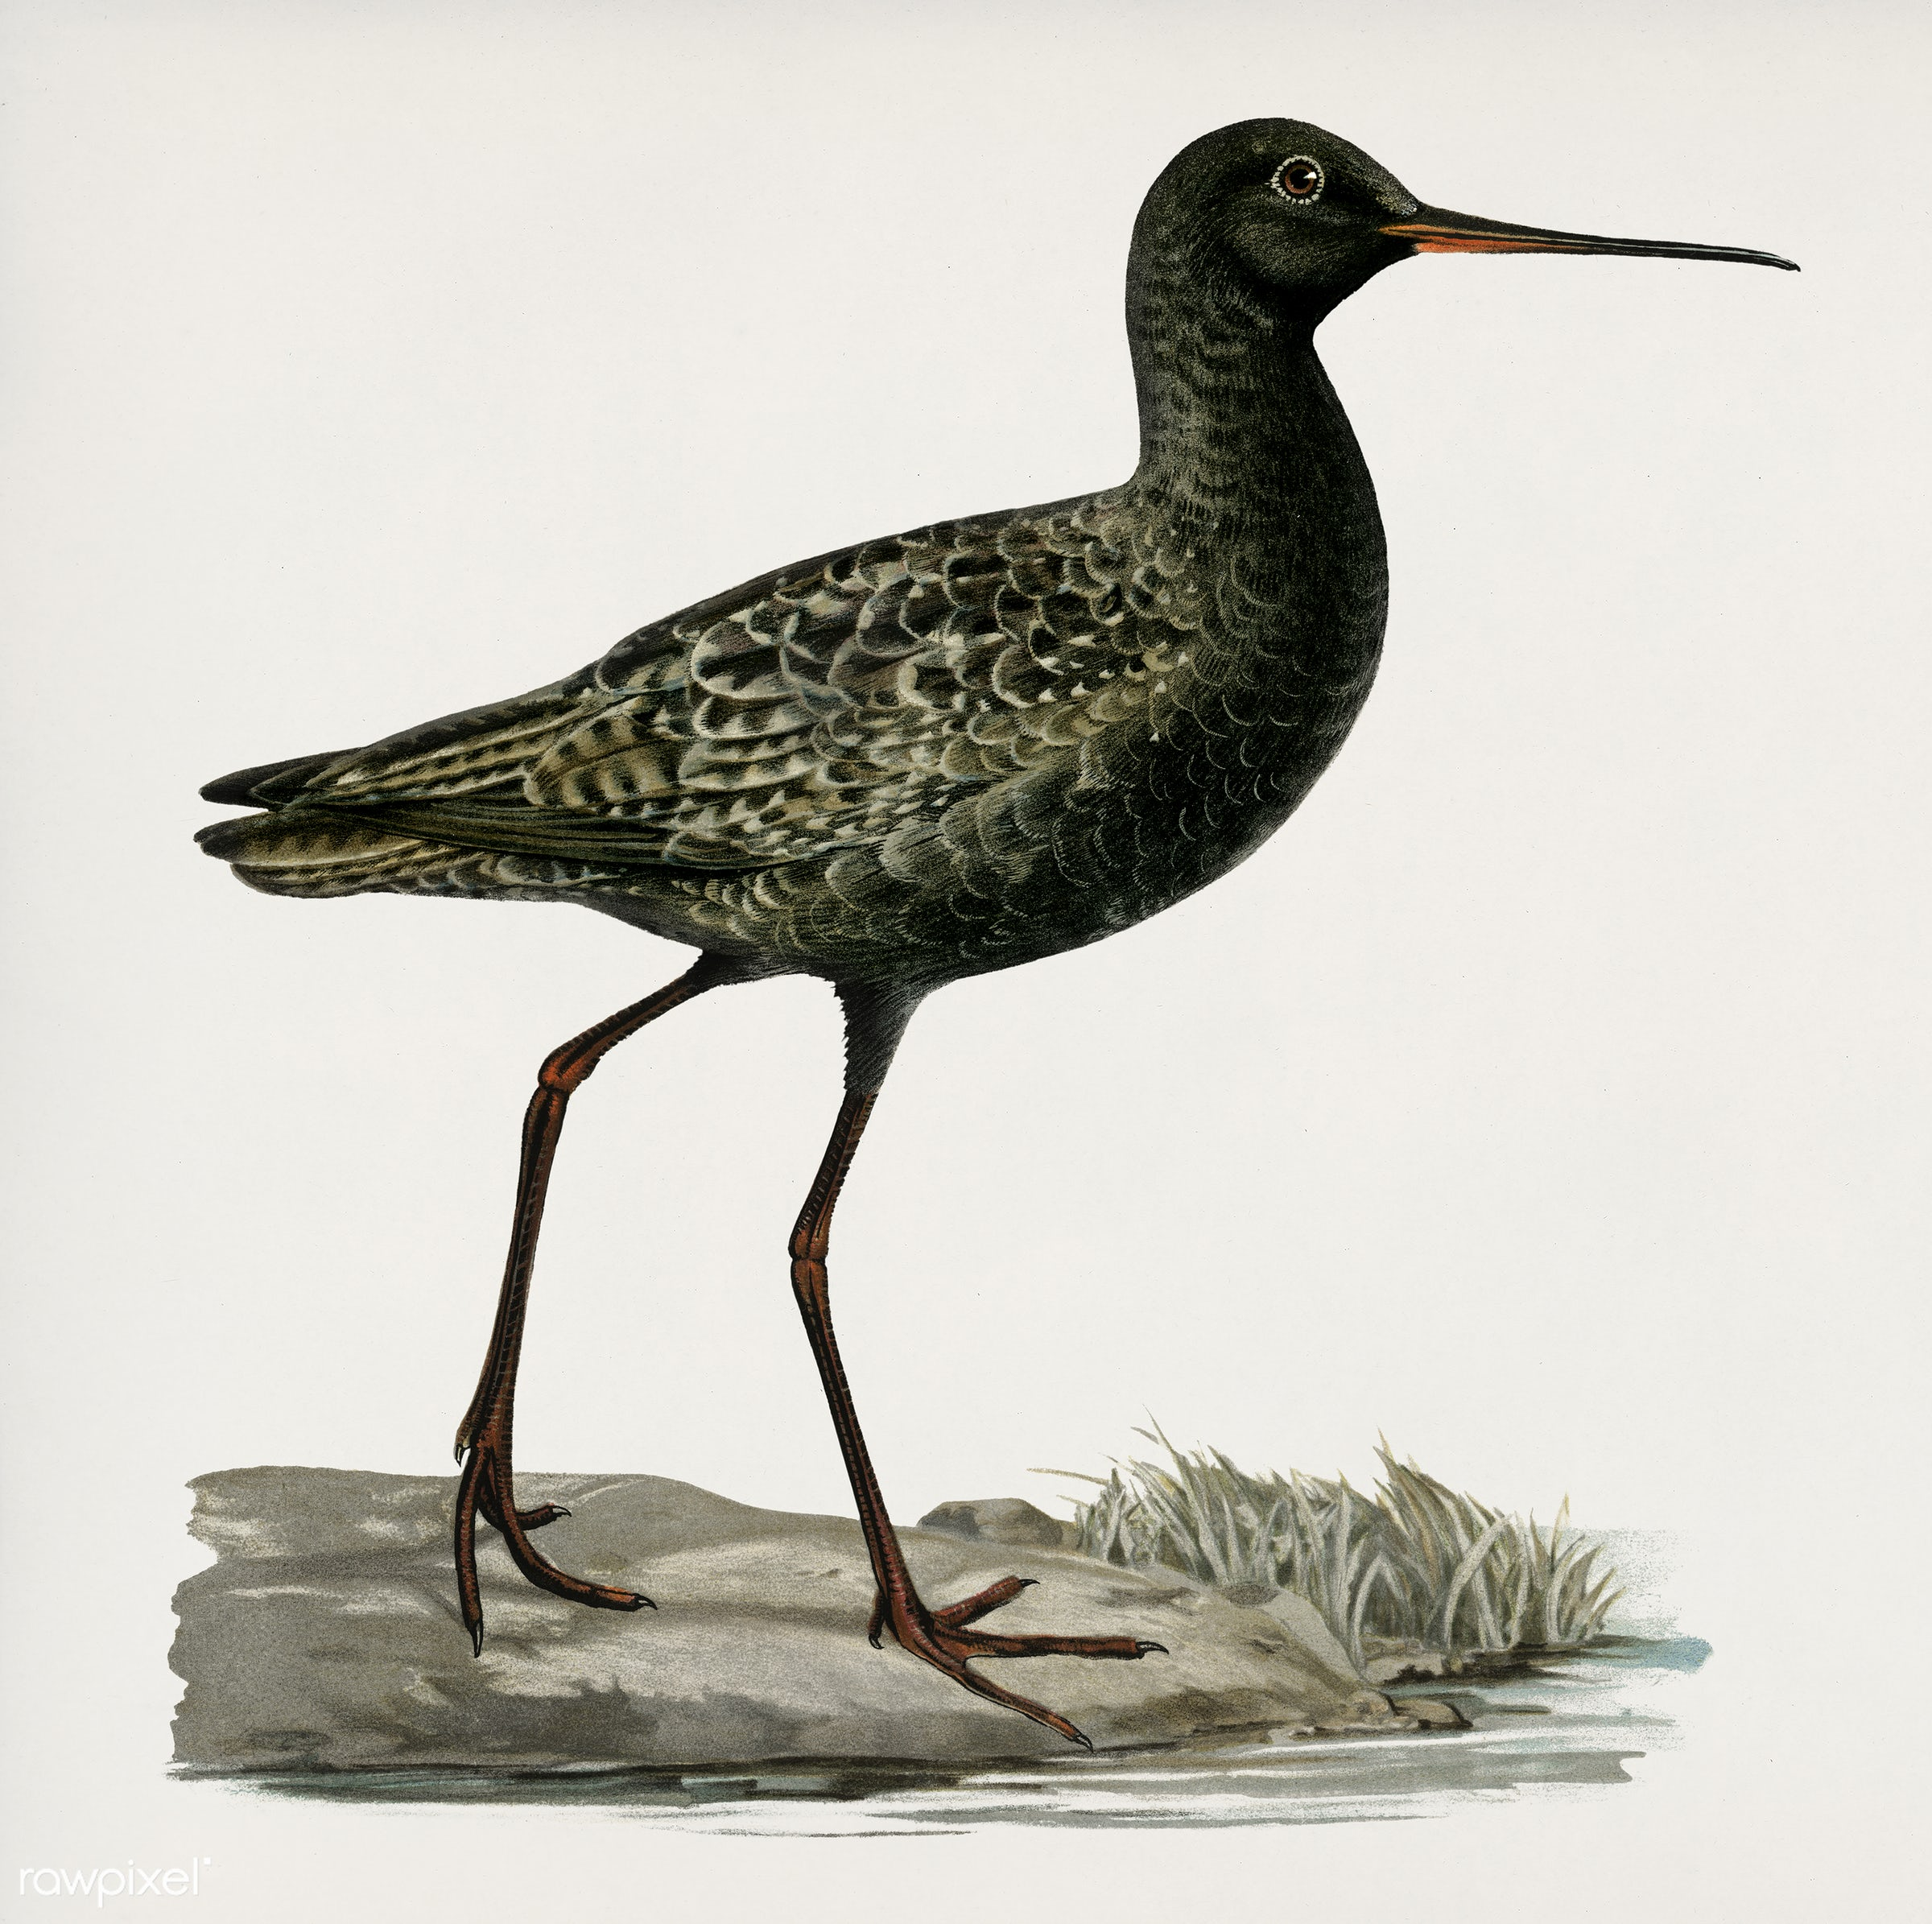 Spotted redshank (Totanus erythropus) illustrated by the von Wright brothers. Digitally enhanced from our own 1929 folio...